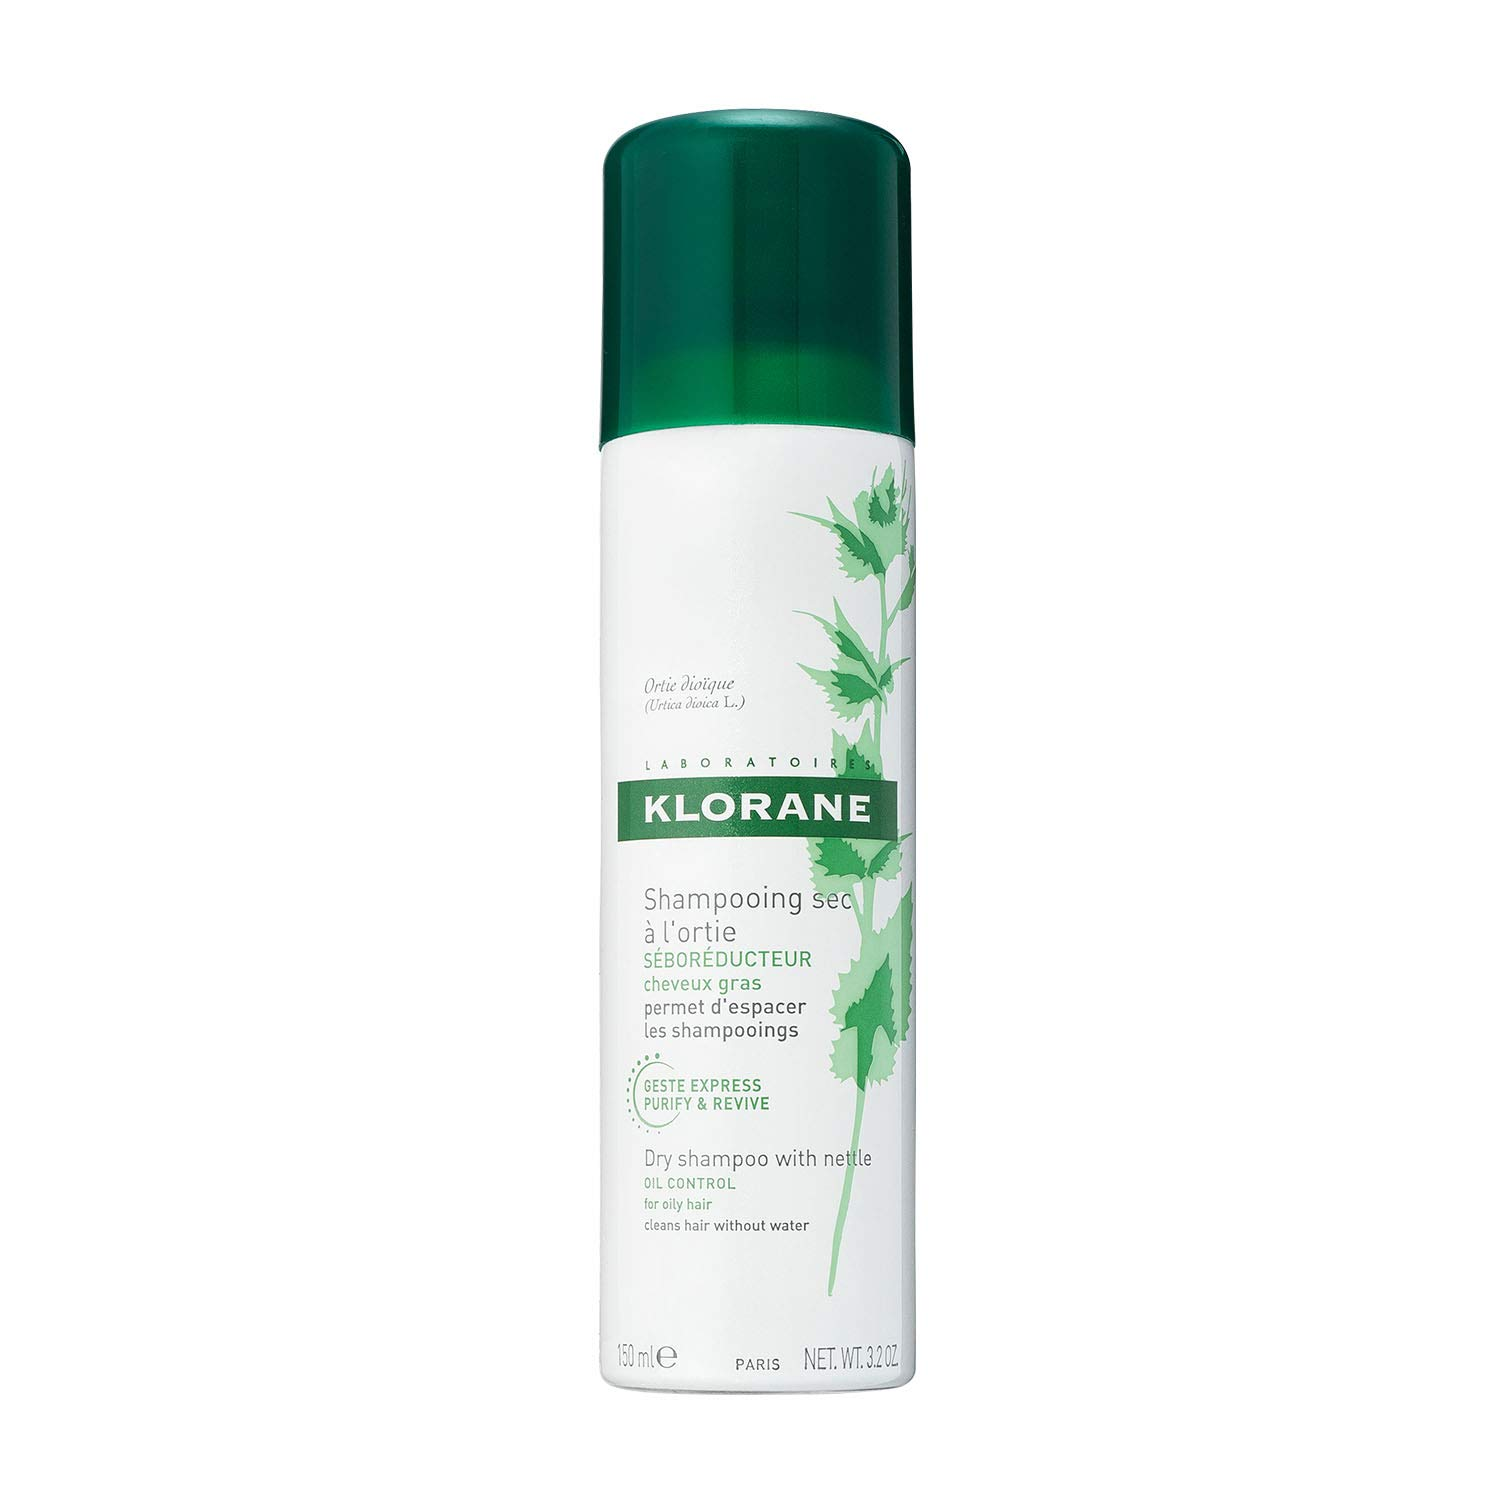 Klorane Dry Shampoo with Nettle for Oily Hair and Scalp, Regulates Oil Production, Paraben & Sulfate-Free by Klorane